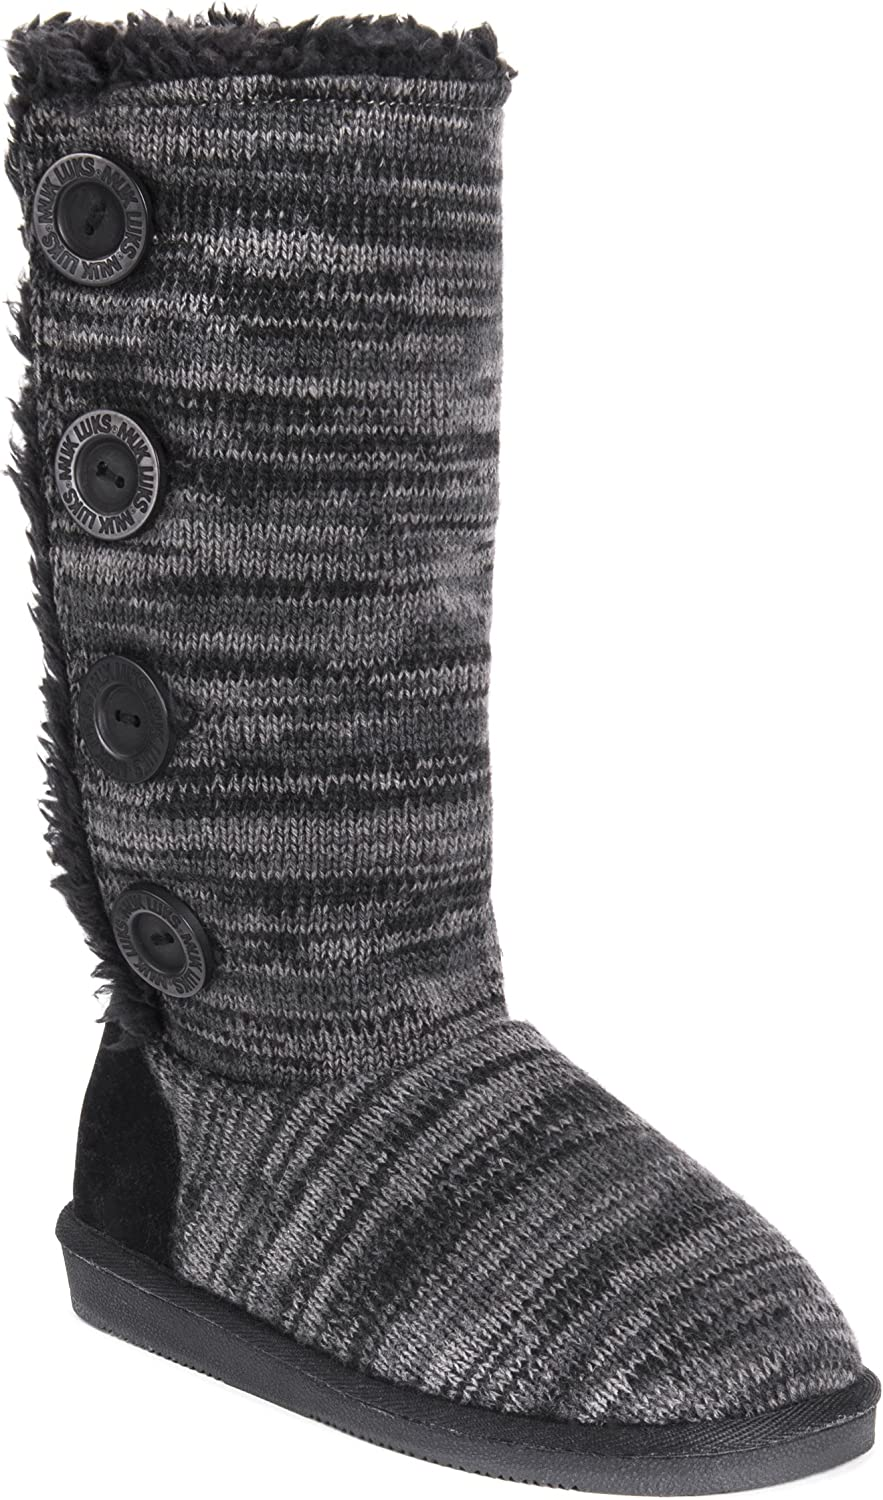 MUK LUKS Womens Women's Liza Boots-Black Fashion Boot